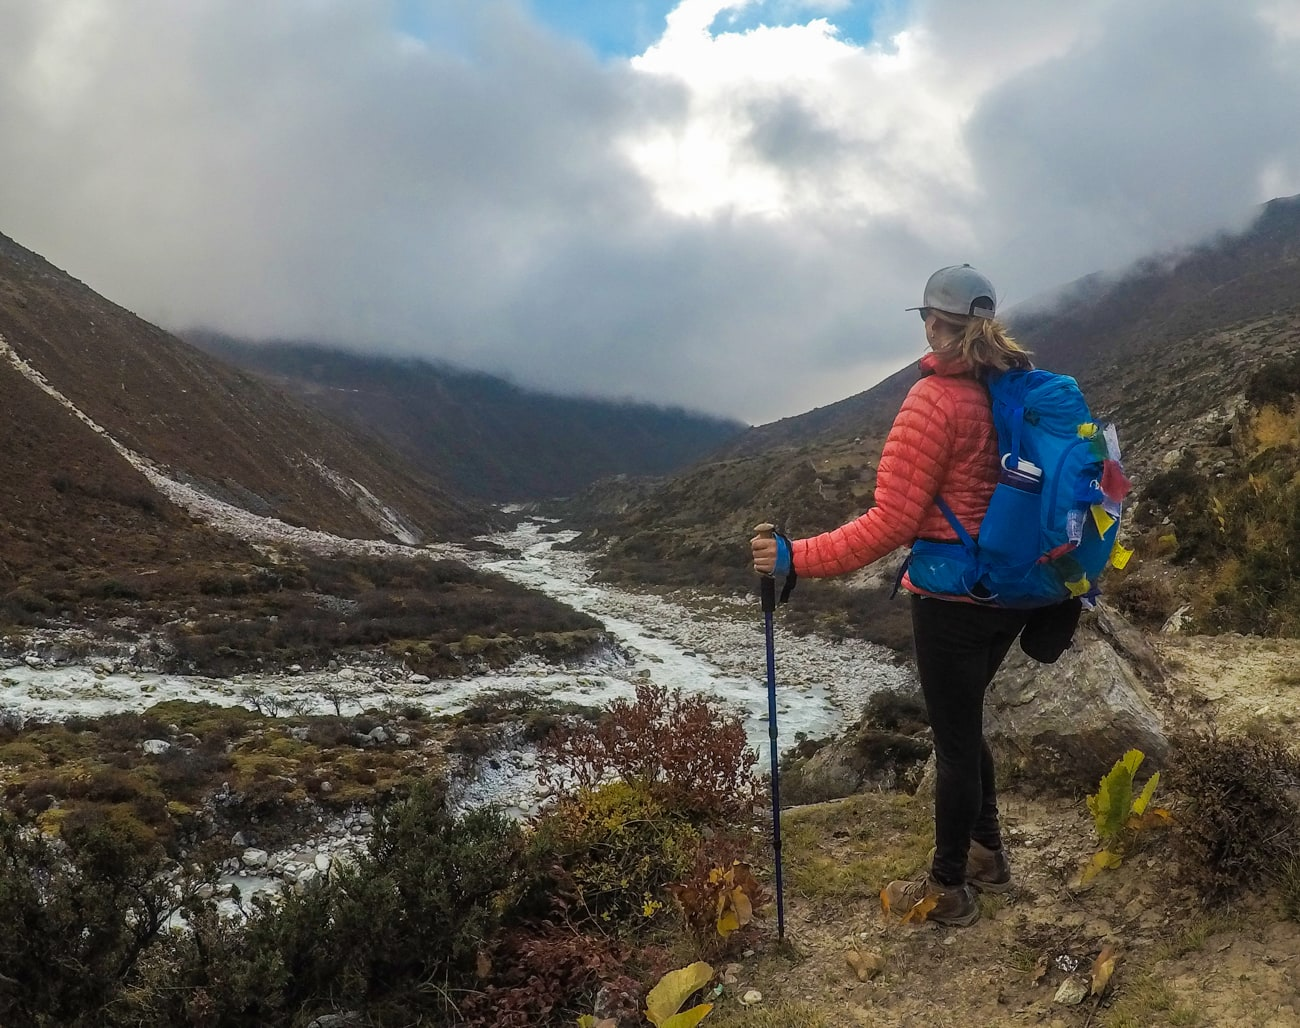 Learn how to choose the best daypack for hiking & get our favorite pack recommendations with tips for finding the right fit, capacity & technical features.